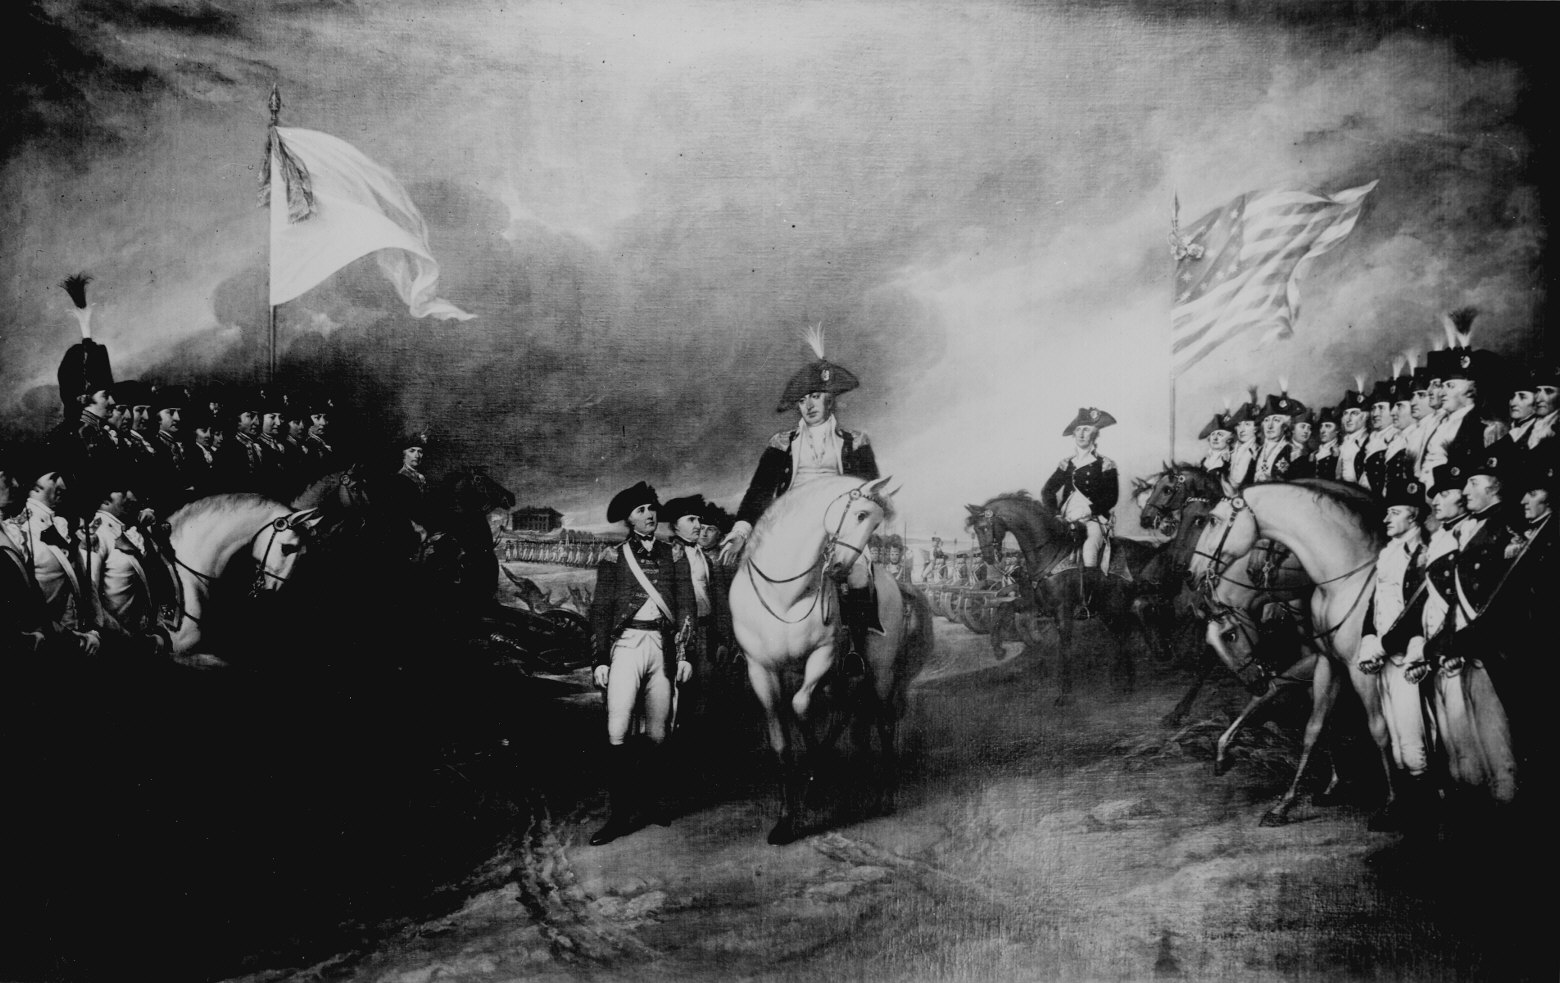 the favorable impact of the revolutionary war in america The continental army regulars received european-style military training later in the american revolutionary war  favor of homespun impact of the revolutionary.